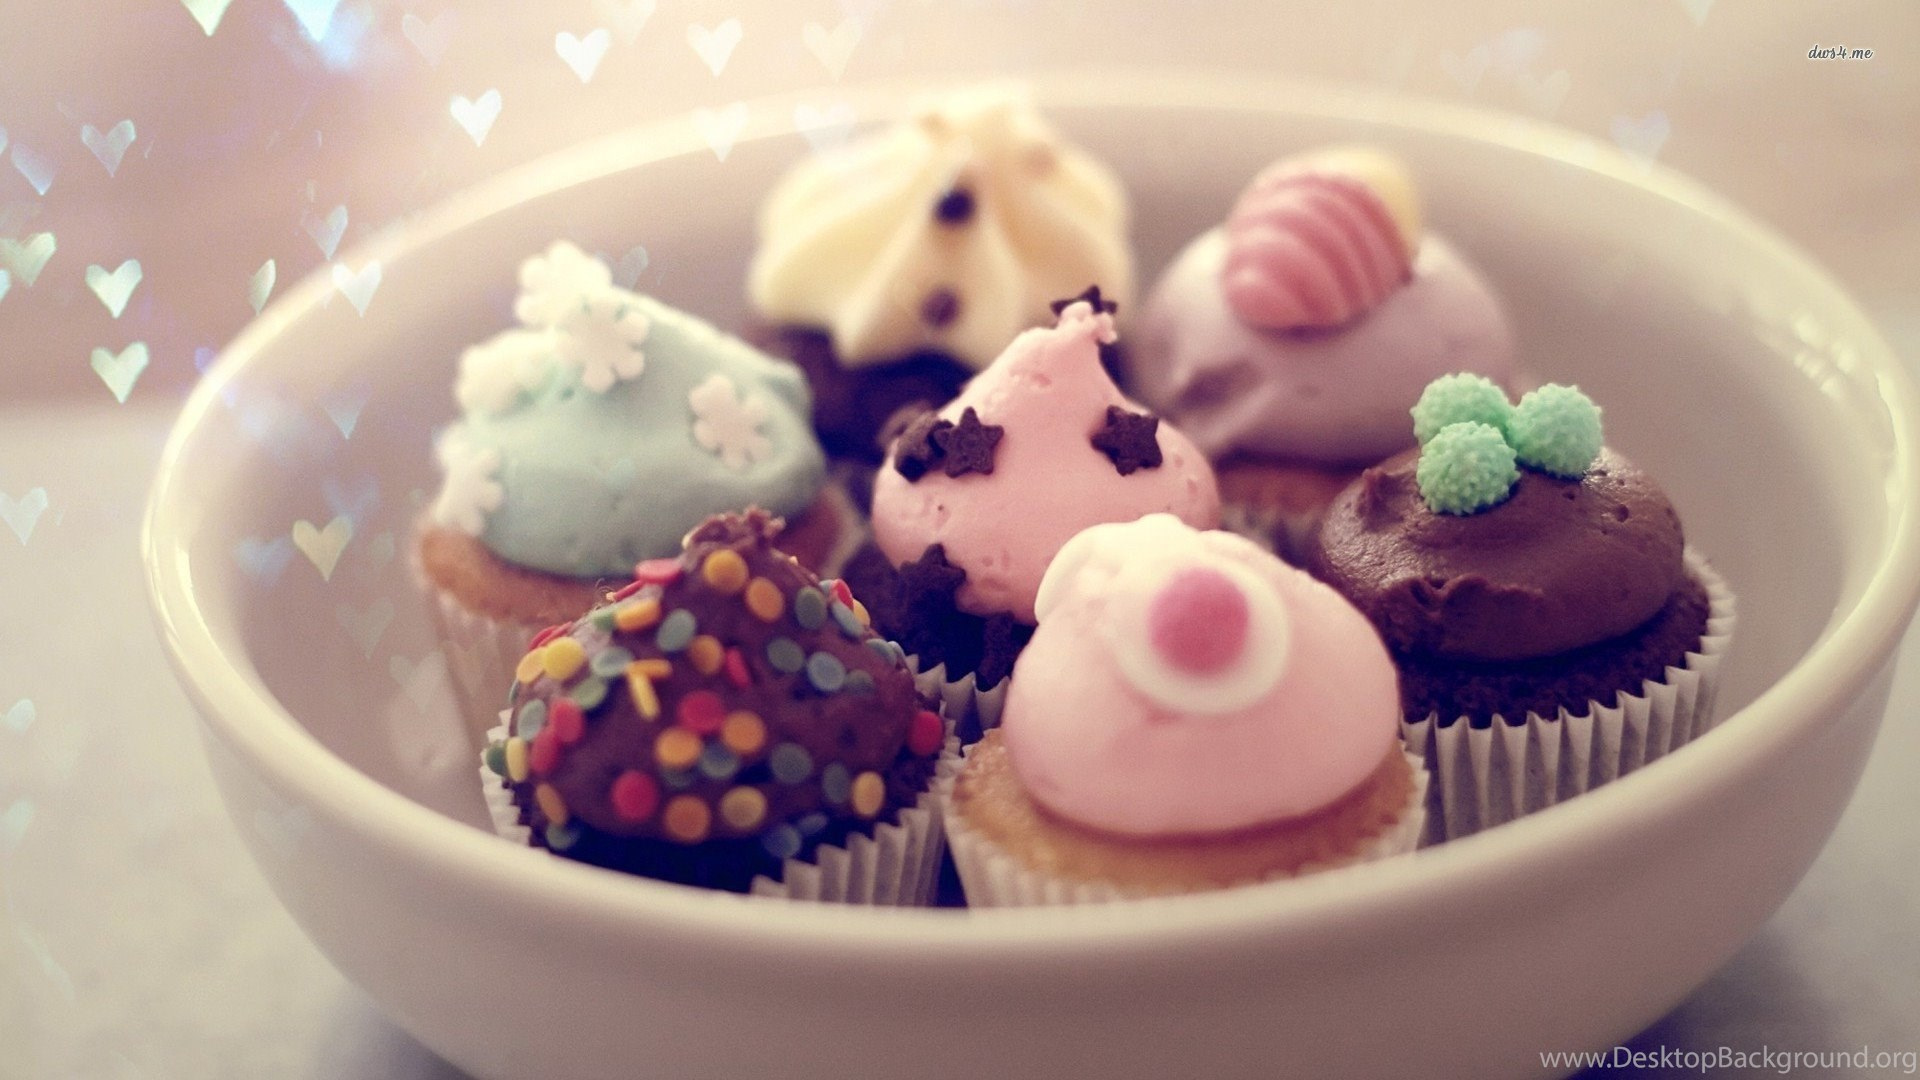 cupcakes wallpapers photography wallpapers desktop background